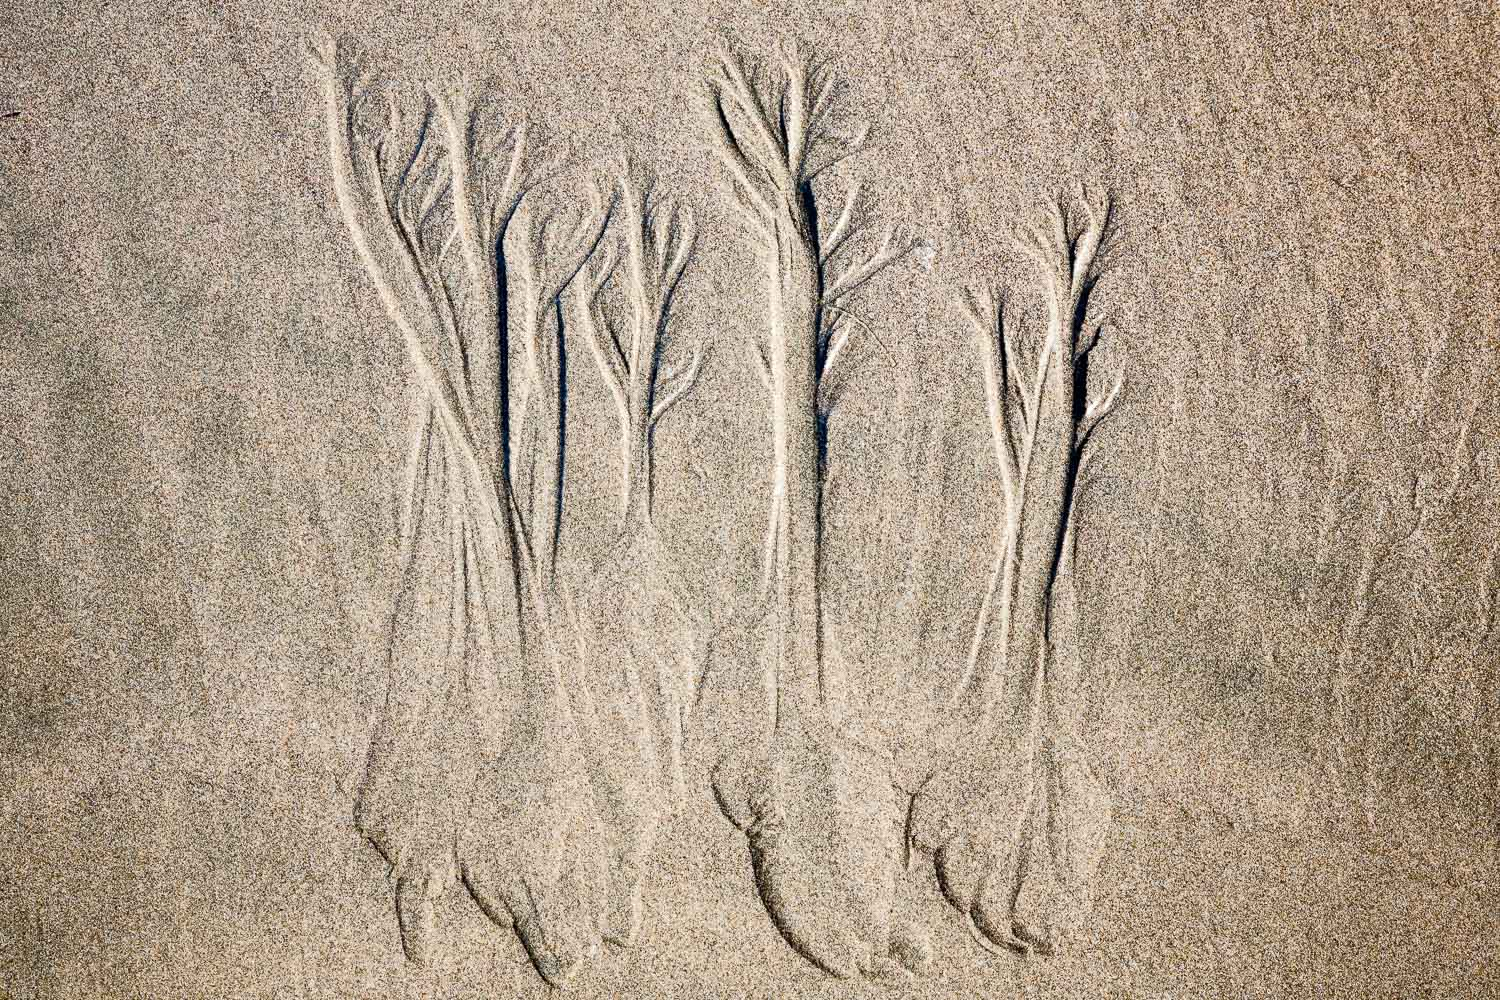 Trees of Sand I